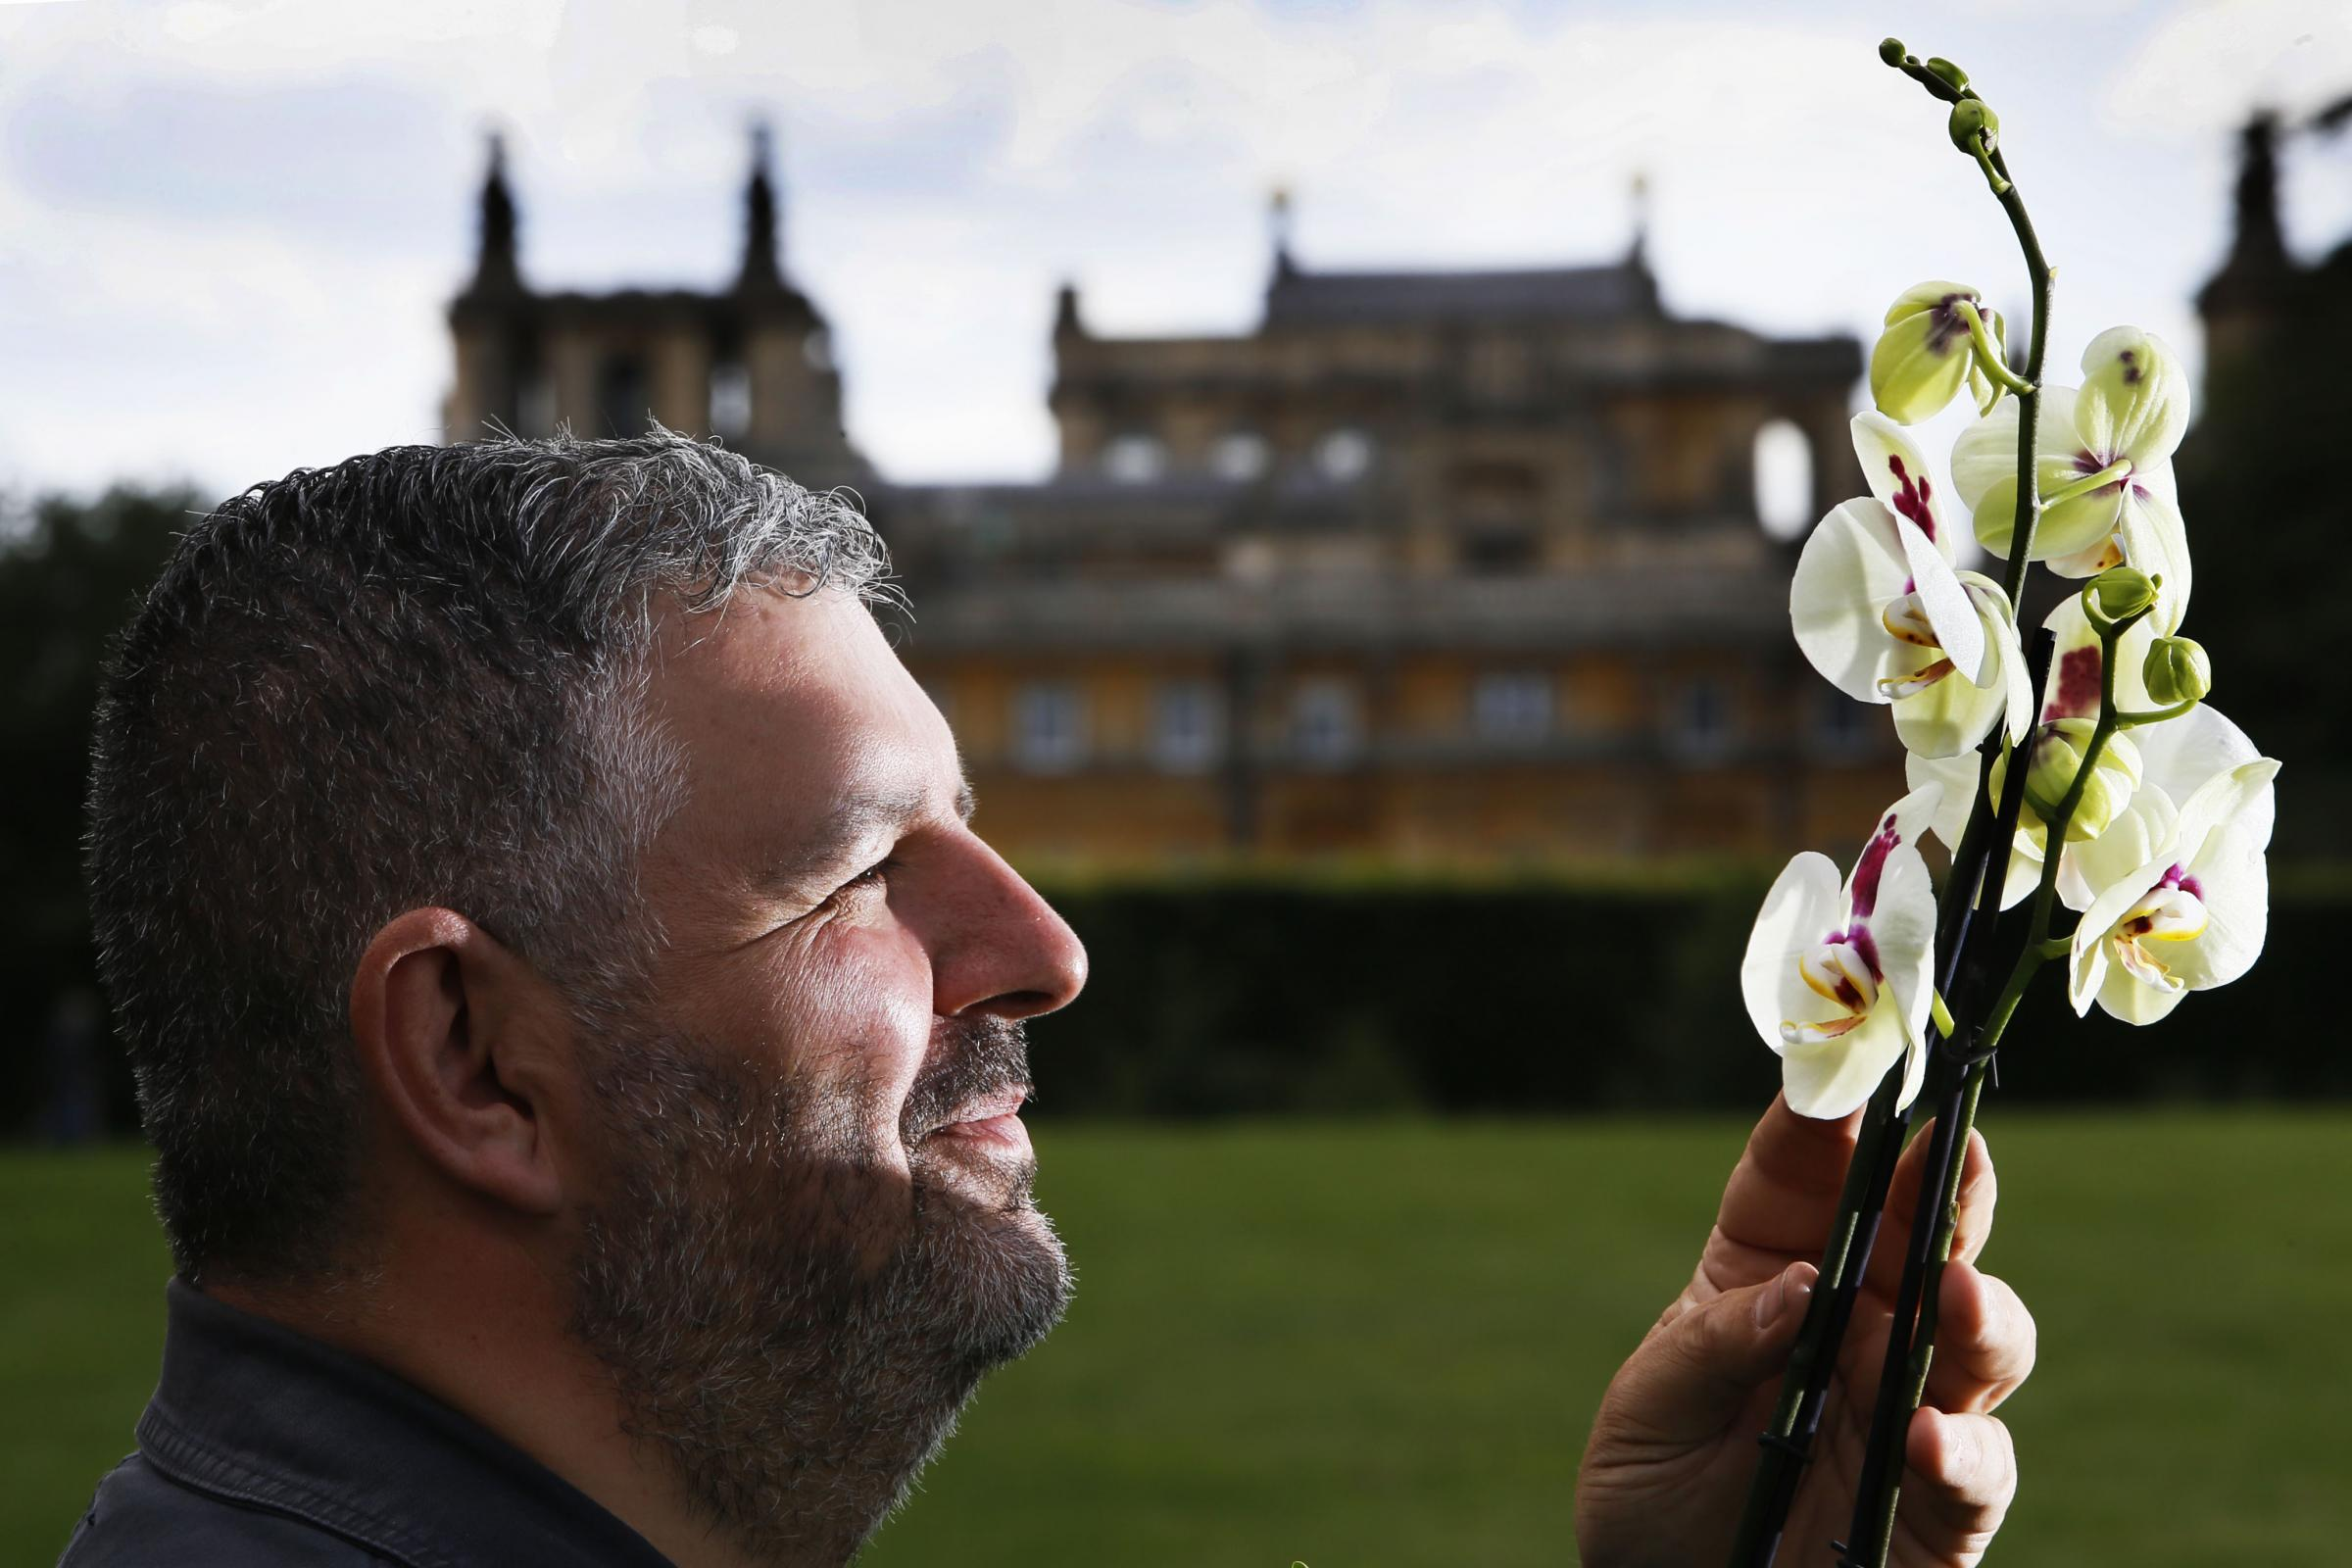 The Blenheim Palace Flower Show 2018Setting up shots before the show opens tomorrow (Friday the 22nd of June).Pictured here is show organiser Mig Kimpton.21.6.2018PICTURE BY ED NIX